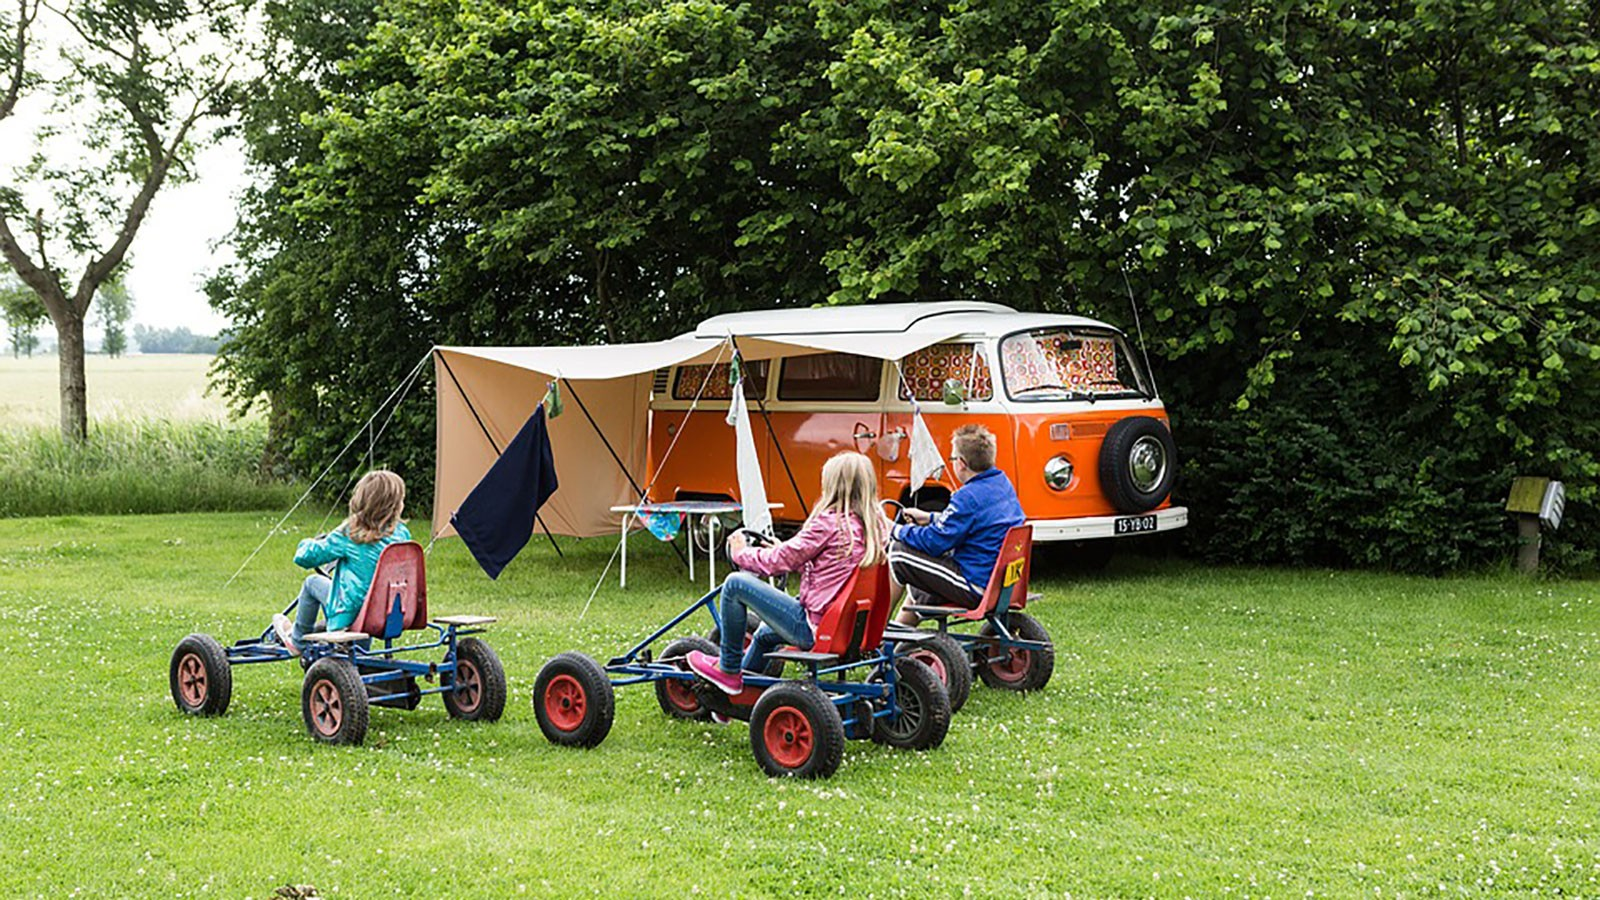 kids playing near a camper in a campground.